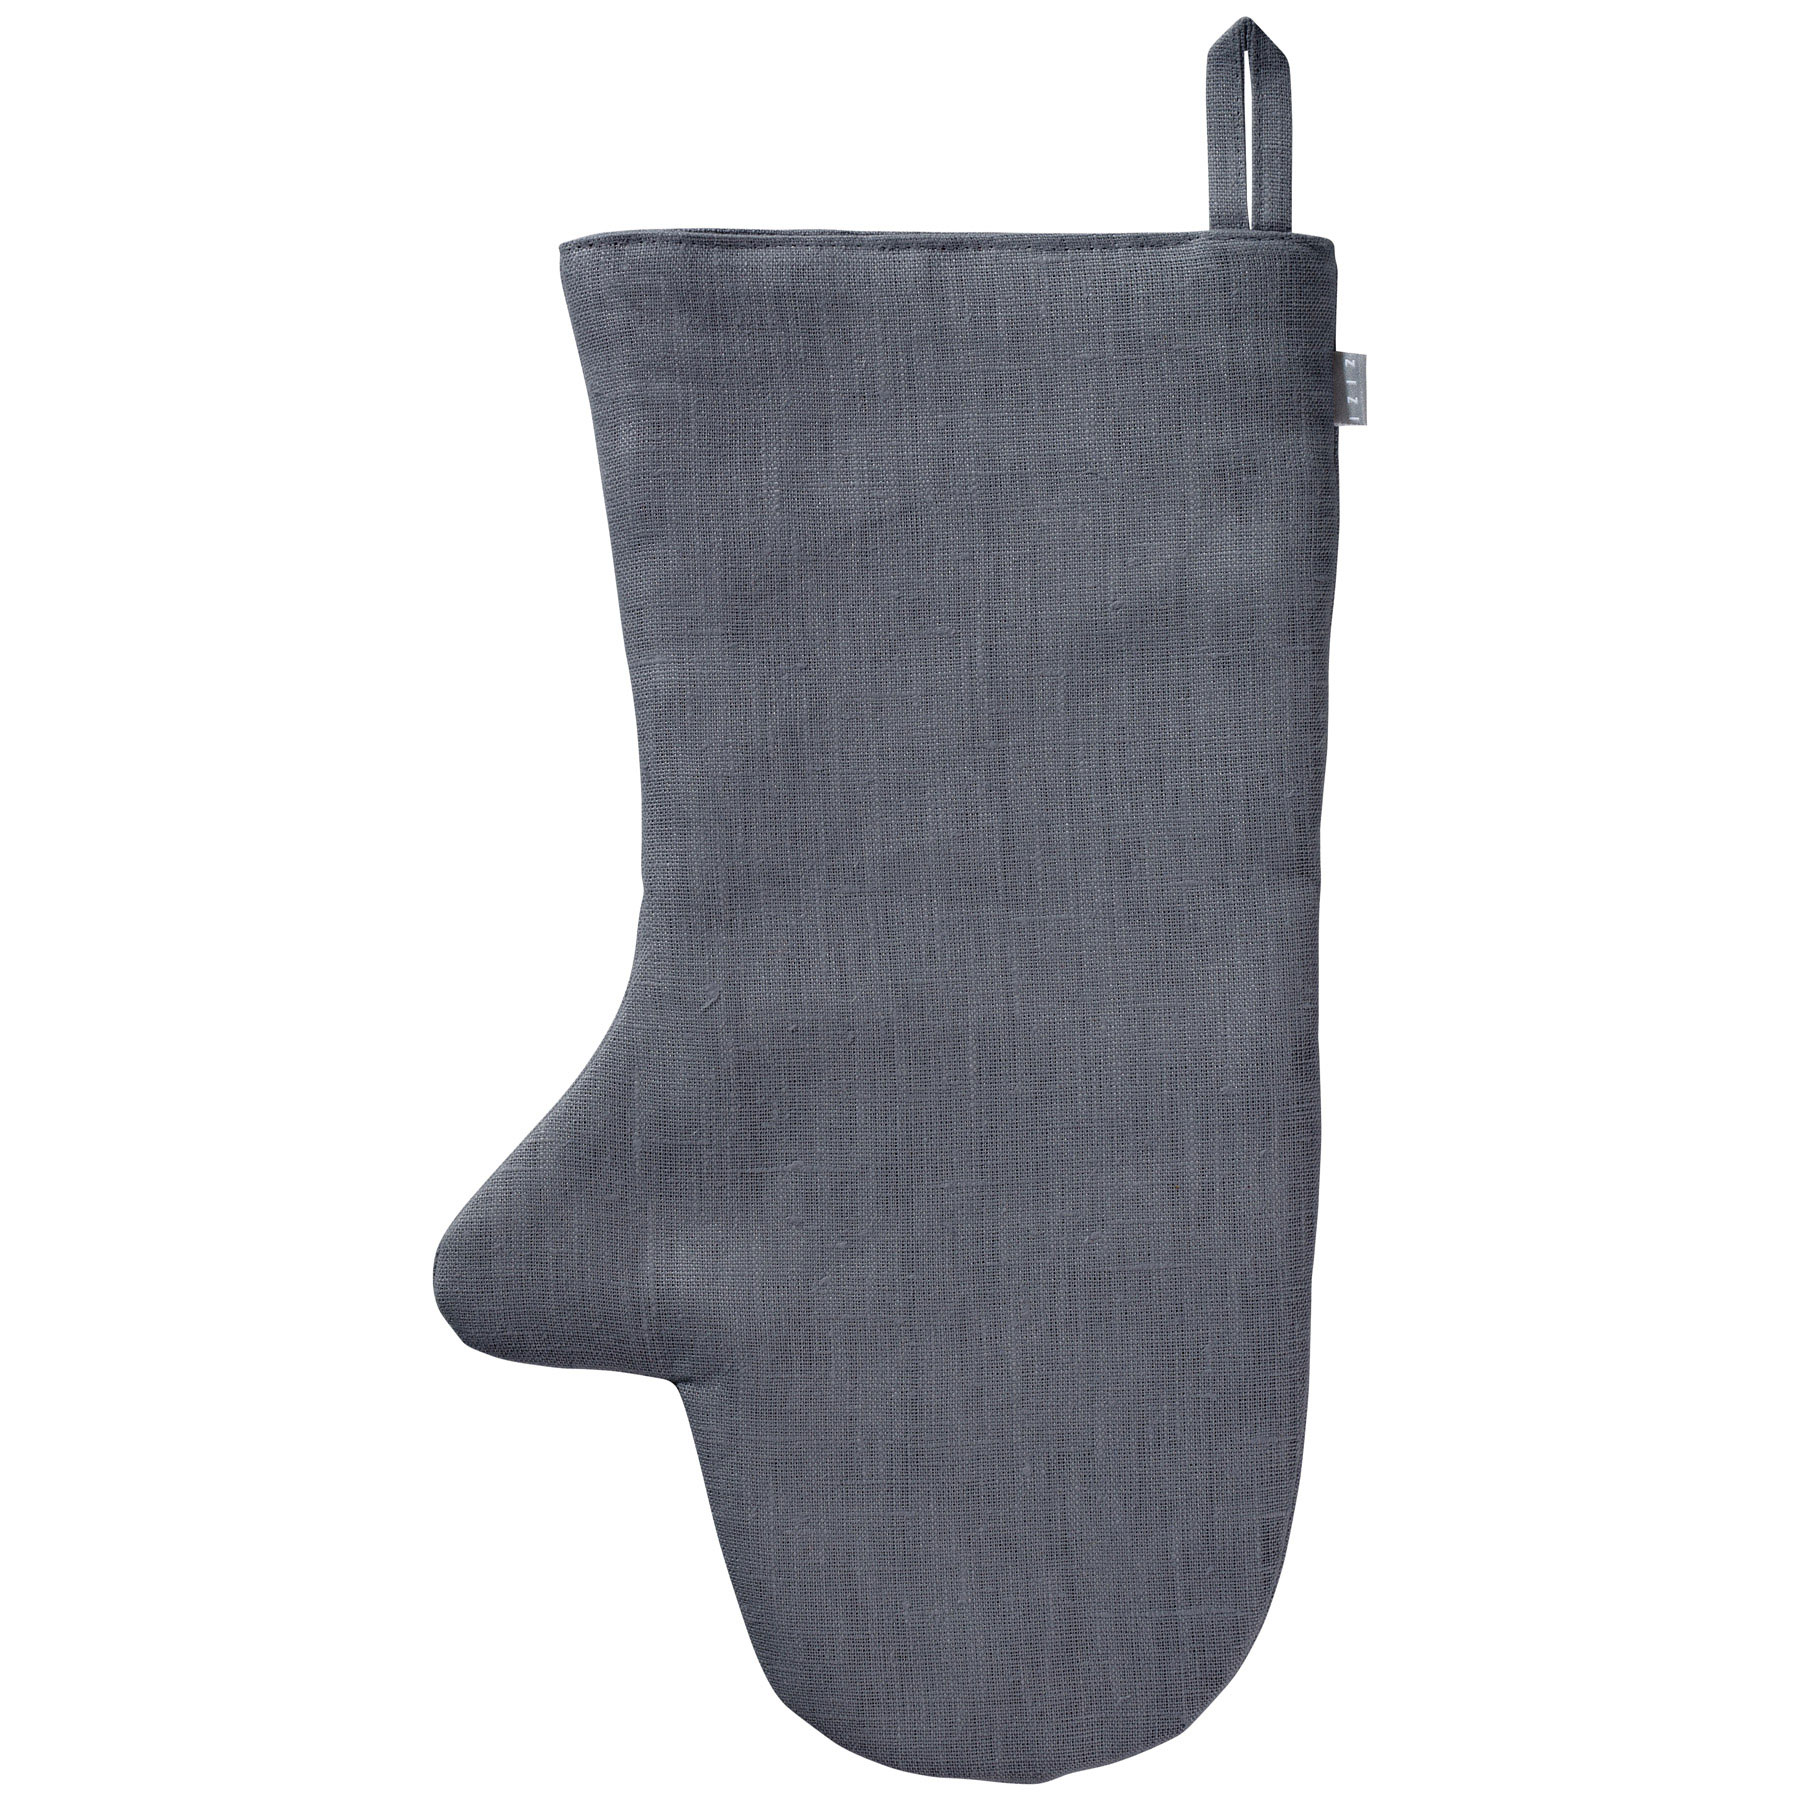 OVEN MITT <br />quicksilver gray